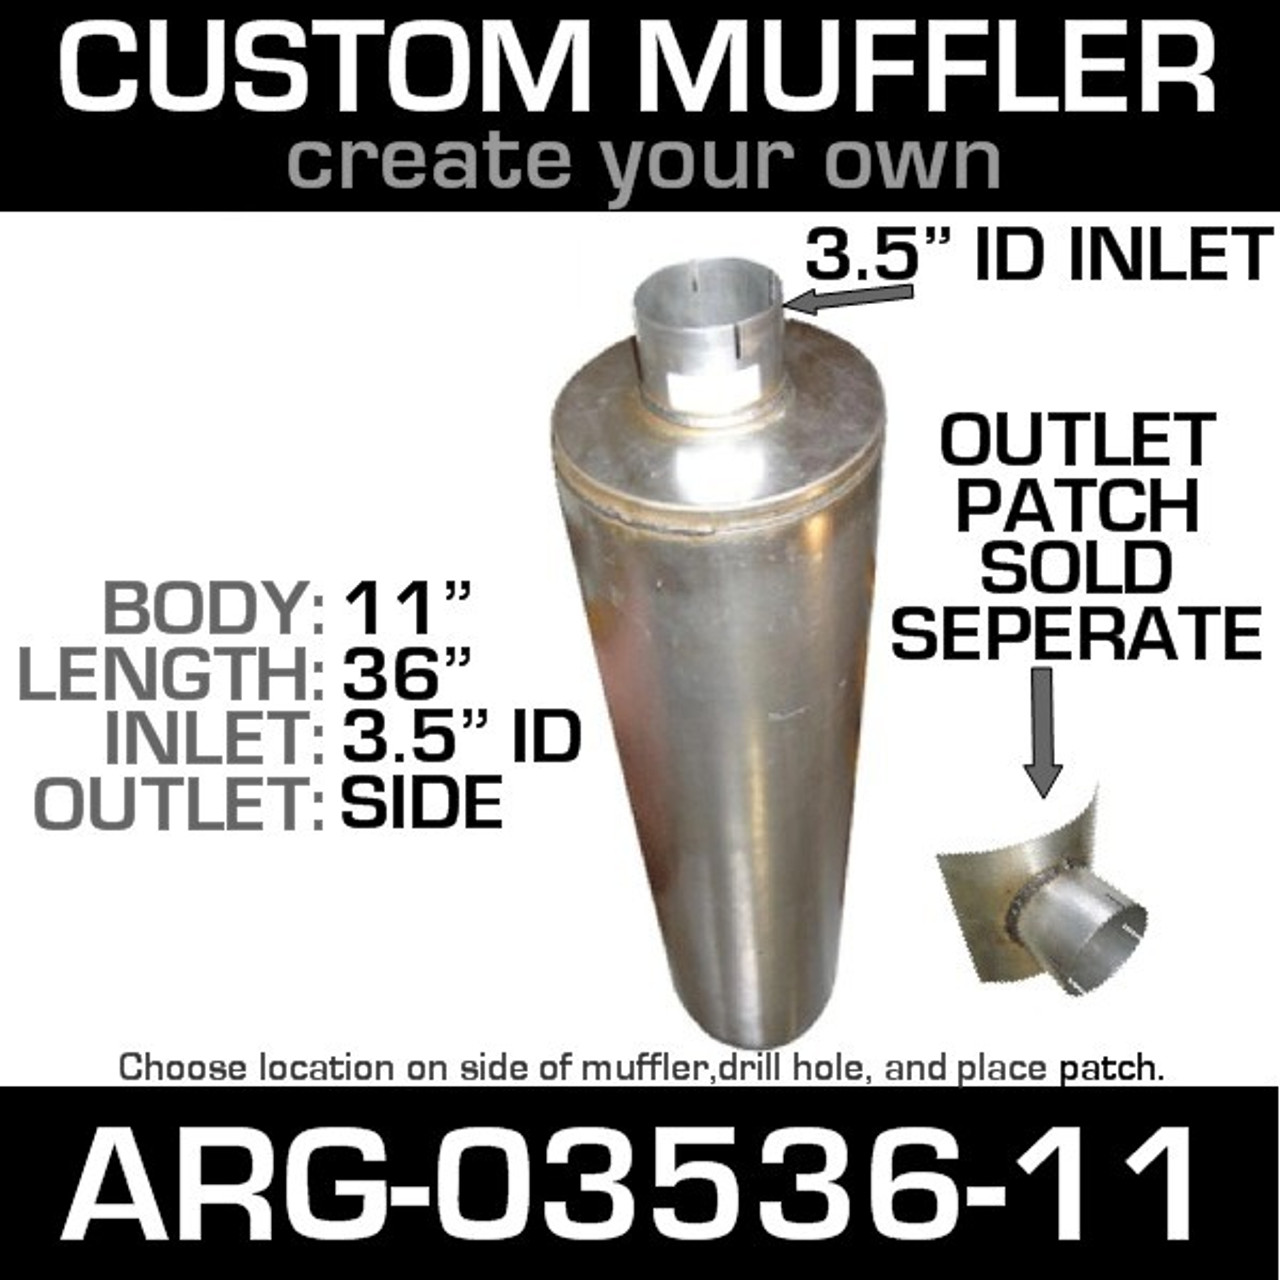 "11"" Universal Muffler 3.5"" ID End In and Out Muffler ARG-03536-11"